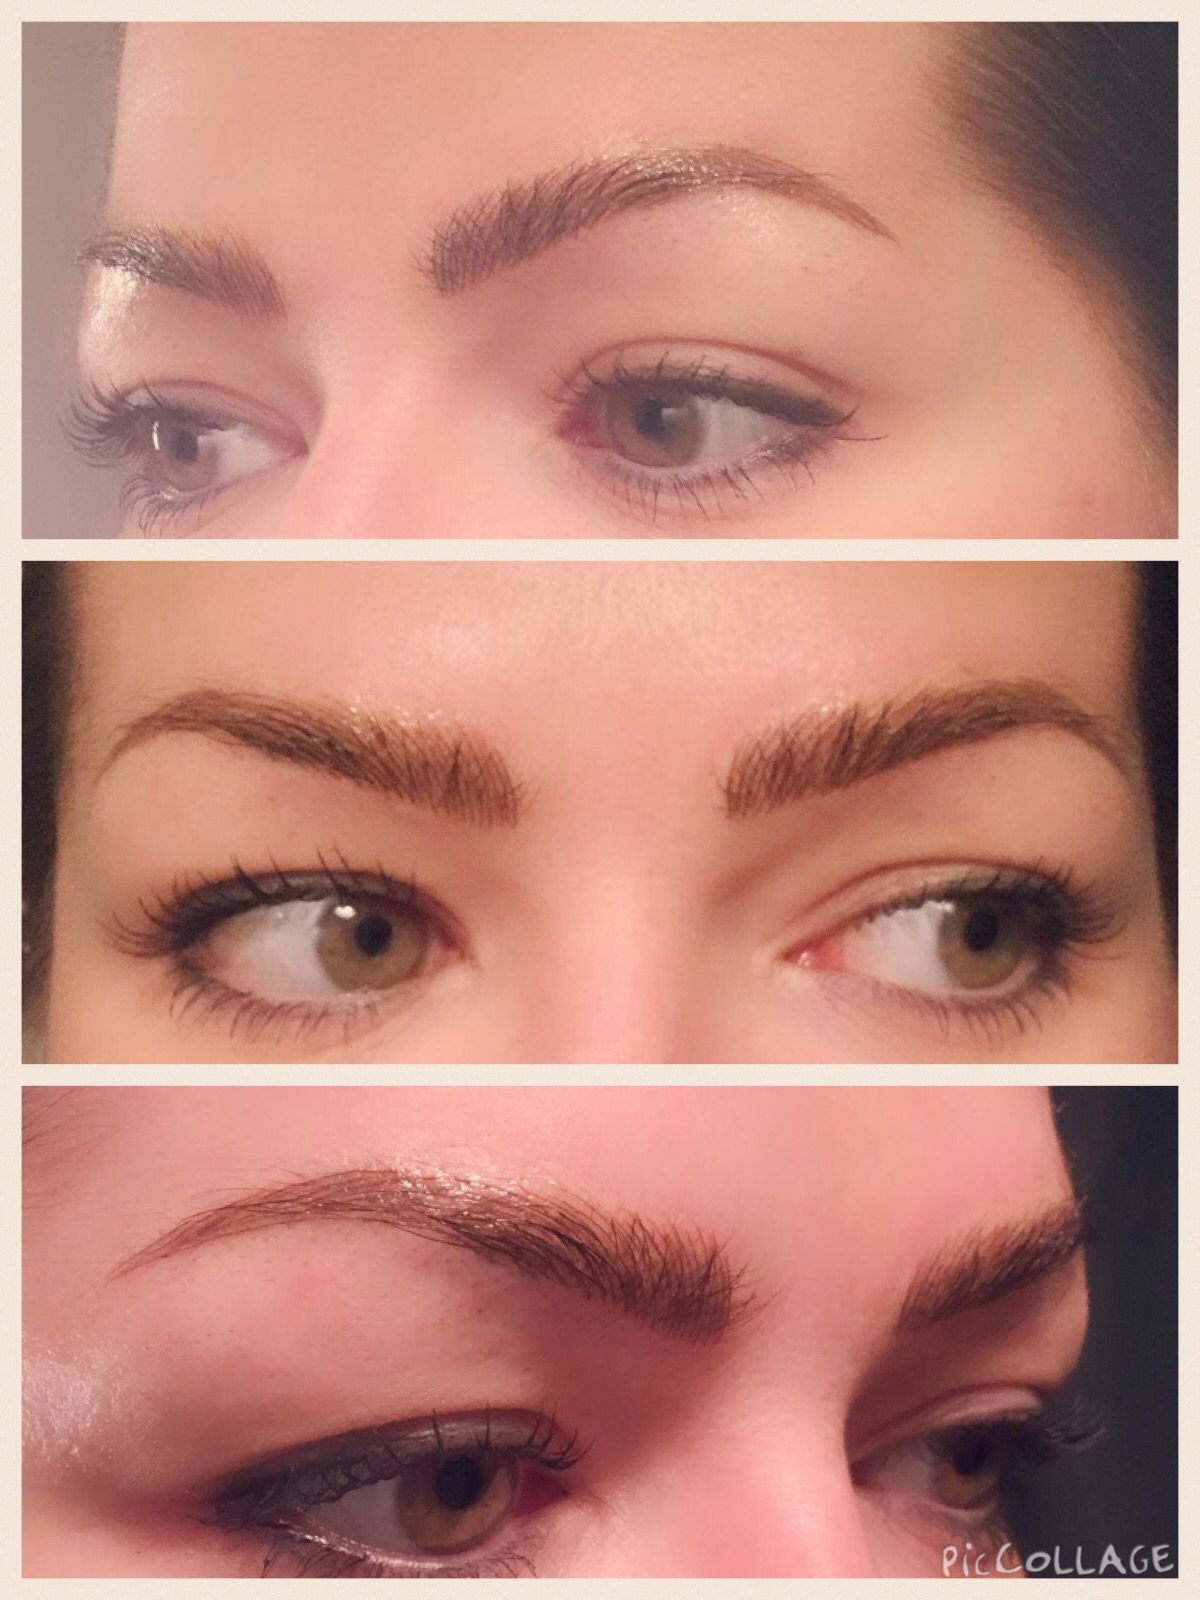 Super Fluffy Microblading Eyebrow Tattoo Www Semipermanentmakeup Me Semipermanentmakeupbyniaome Eyebrowembroidery